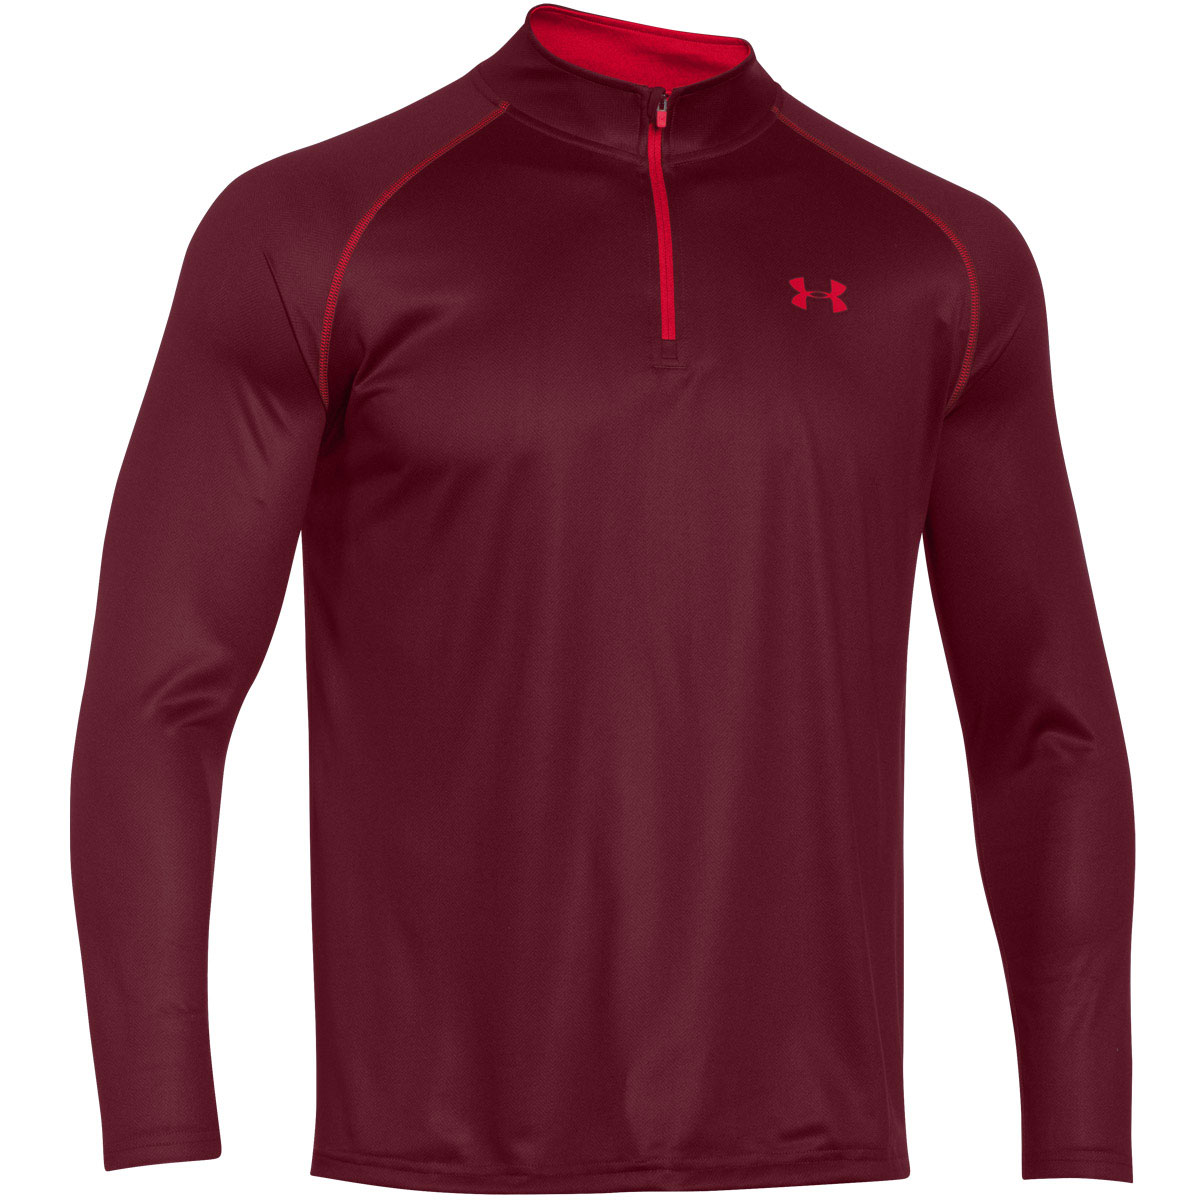 Under armour mens ua tech 1 4 zip long sleeve top gym for Under armour i will shirt